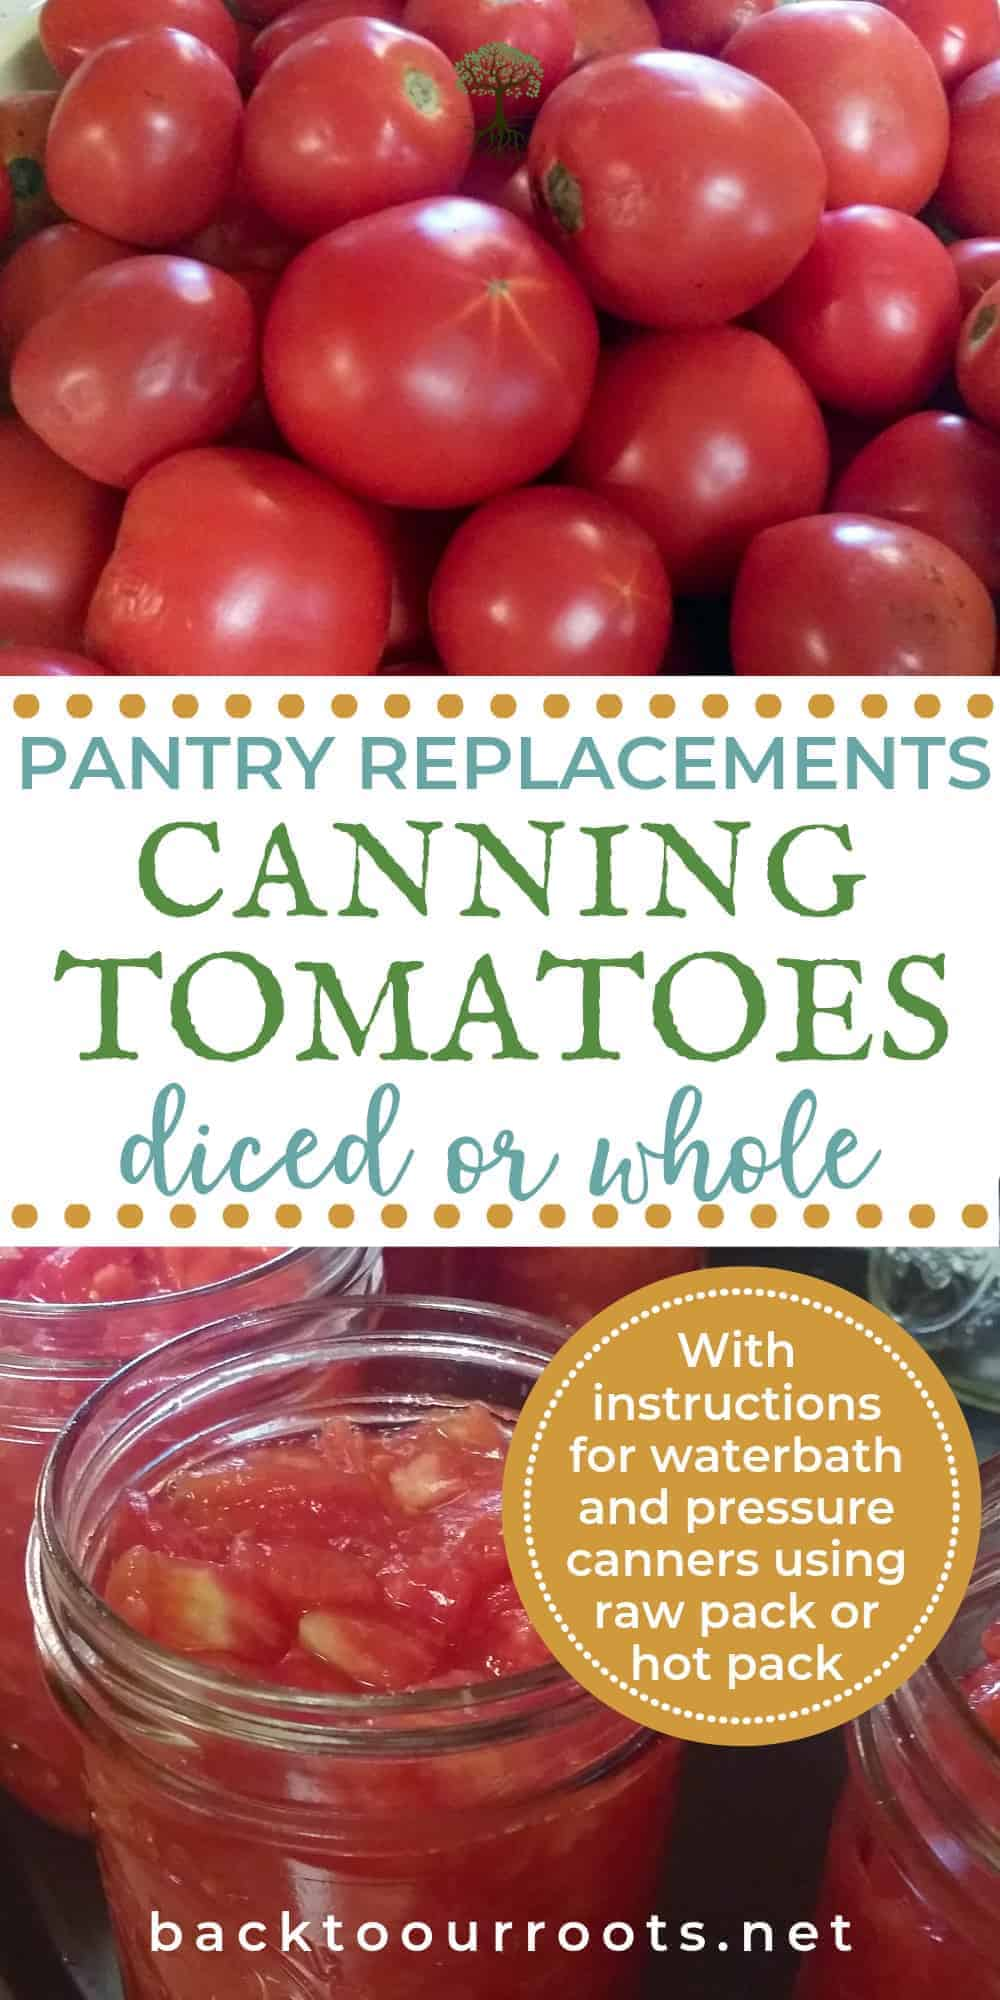 How to Can Tomatoes ~ Diced or Whole